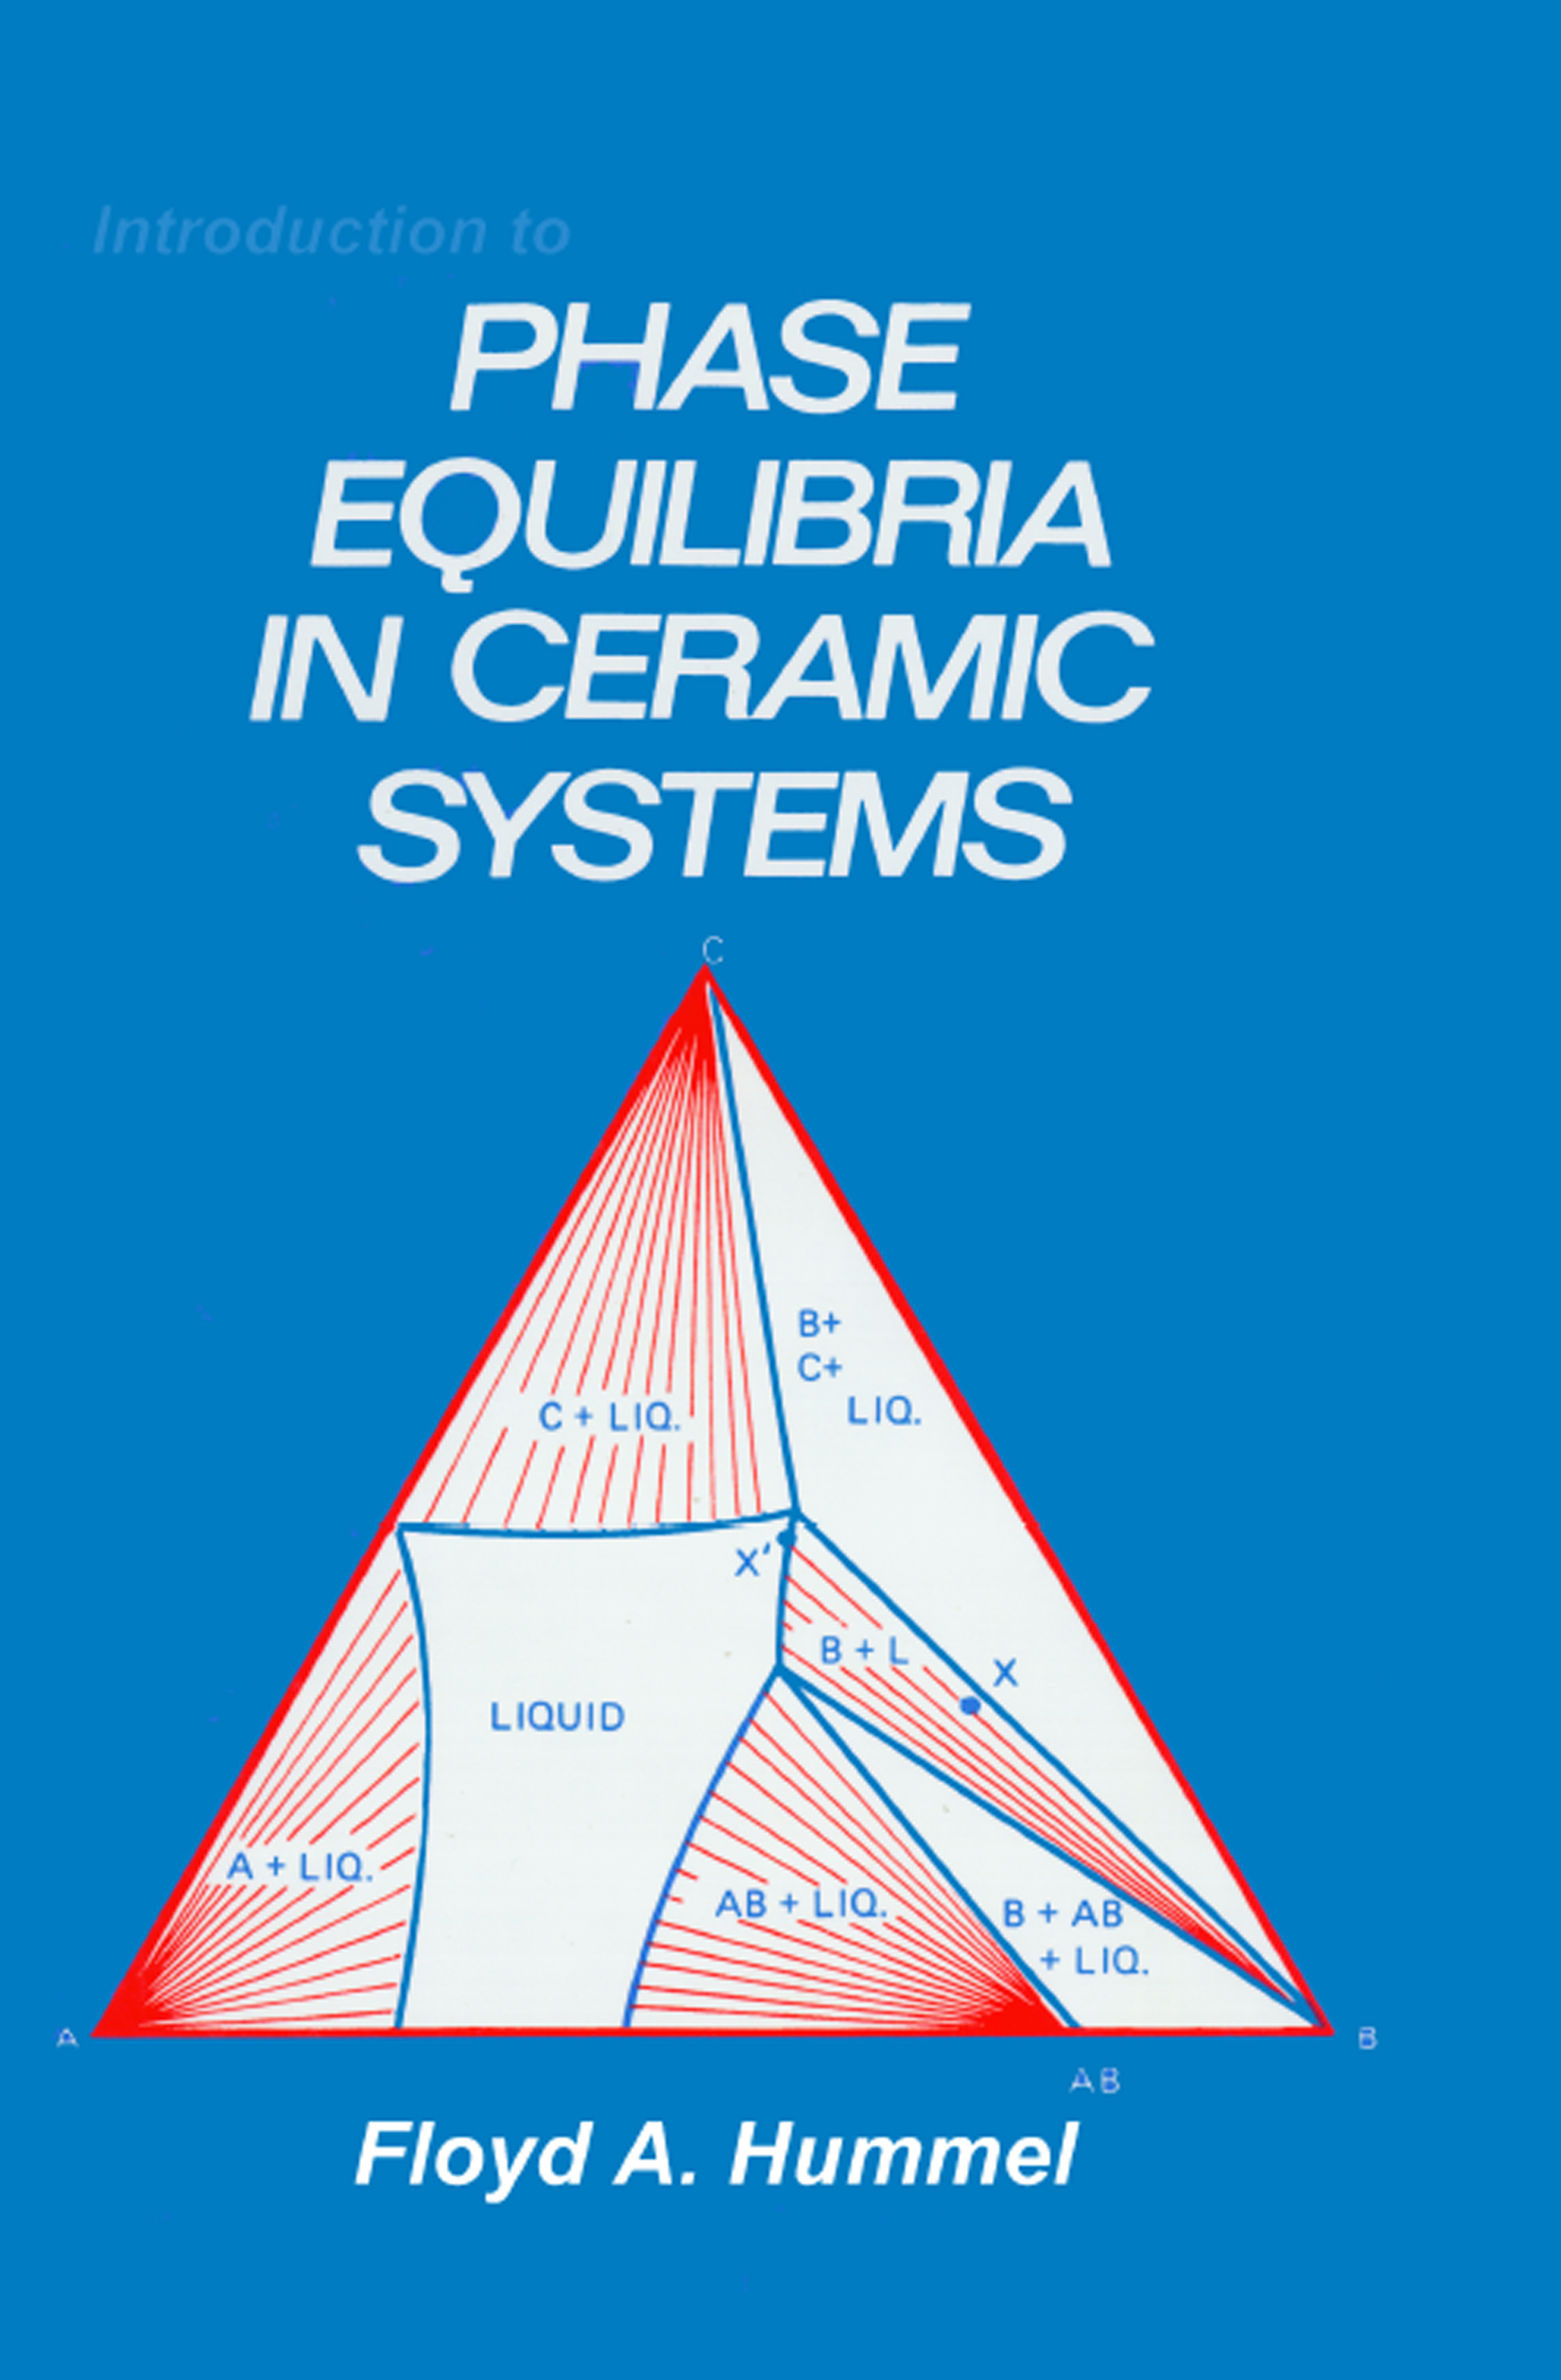 Introduction to Phase Equilibria in Ceramic Systems